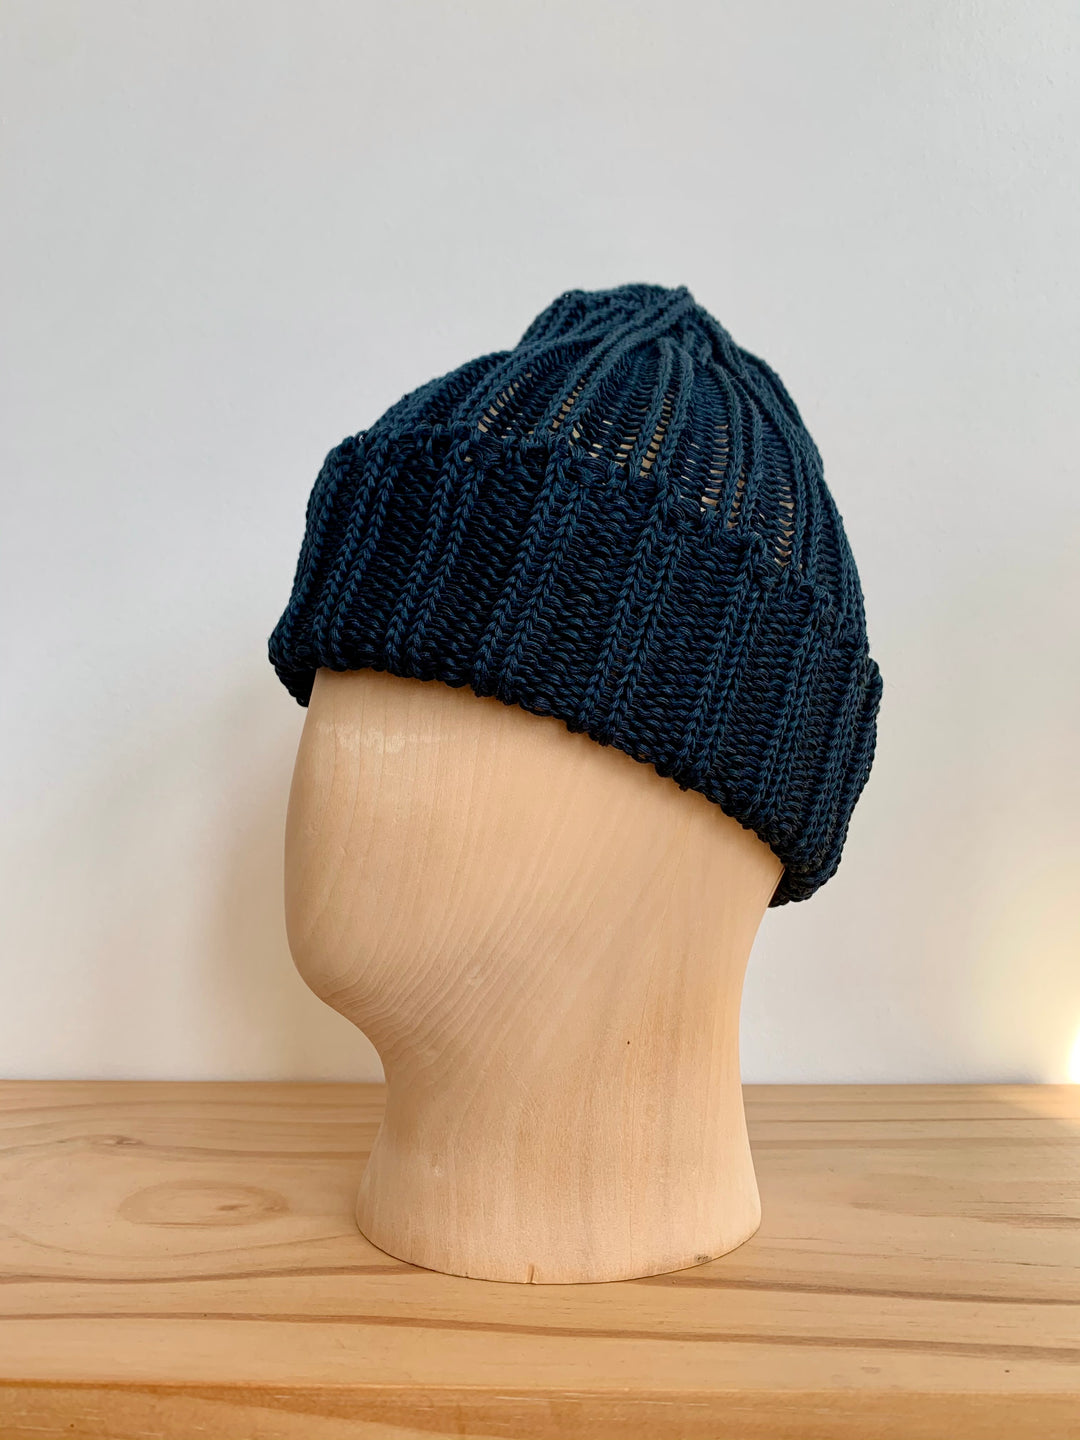 Cableami Navy Linen-Like Pre-Organic Cotton Knit Cap